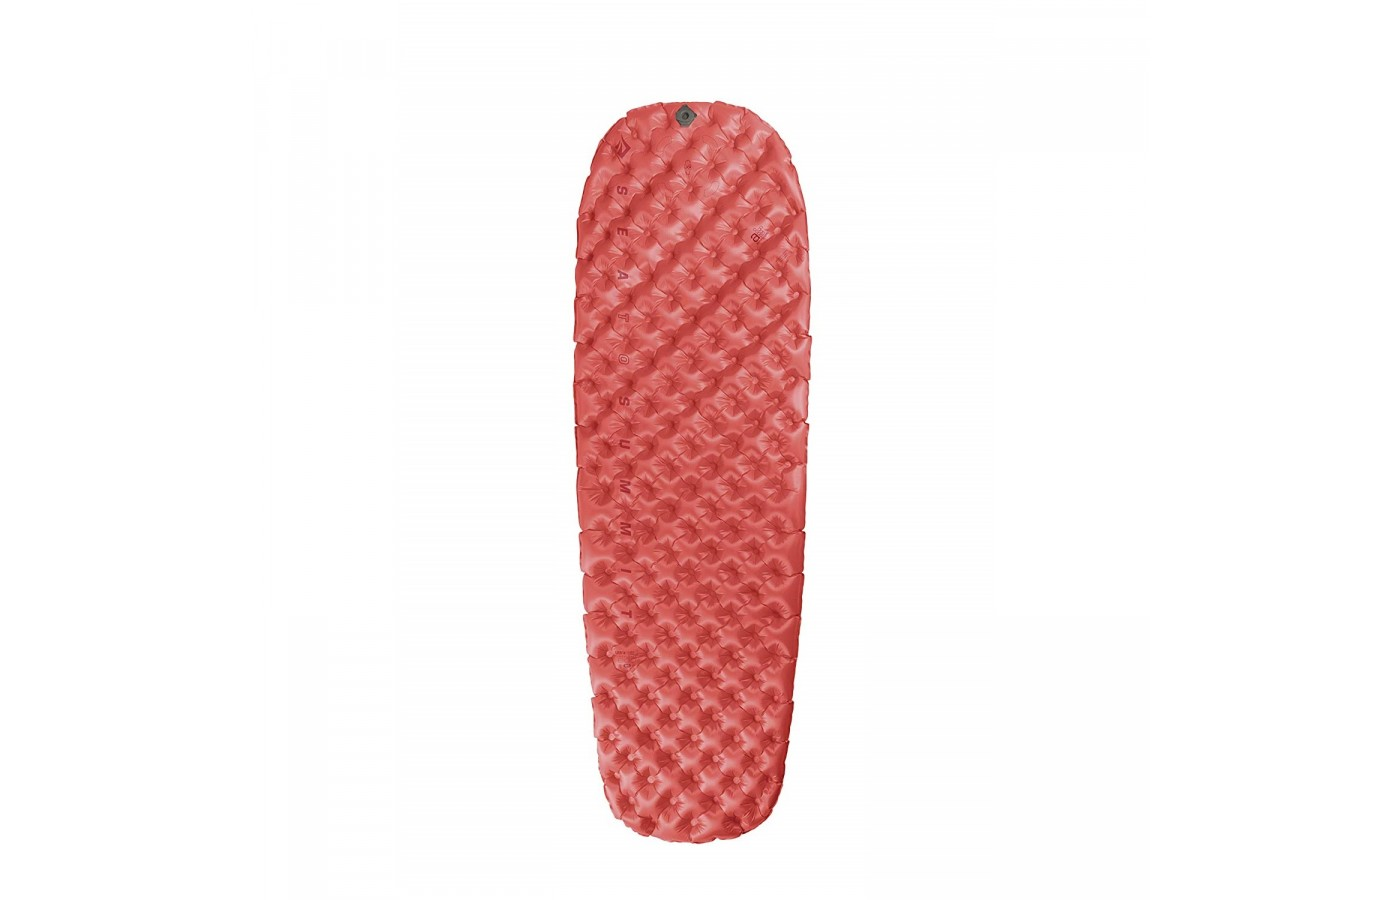 The UltraLight Insulated Regular is designed with 181 Air Sprung Cells for comfort even on the ground.